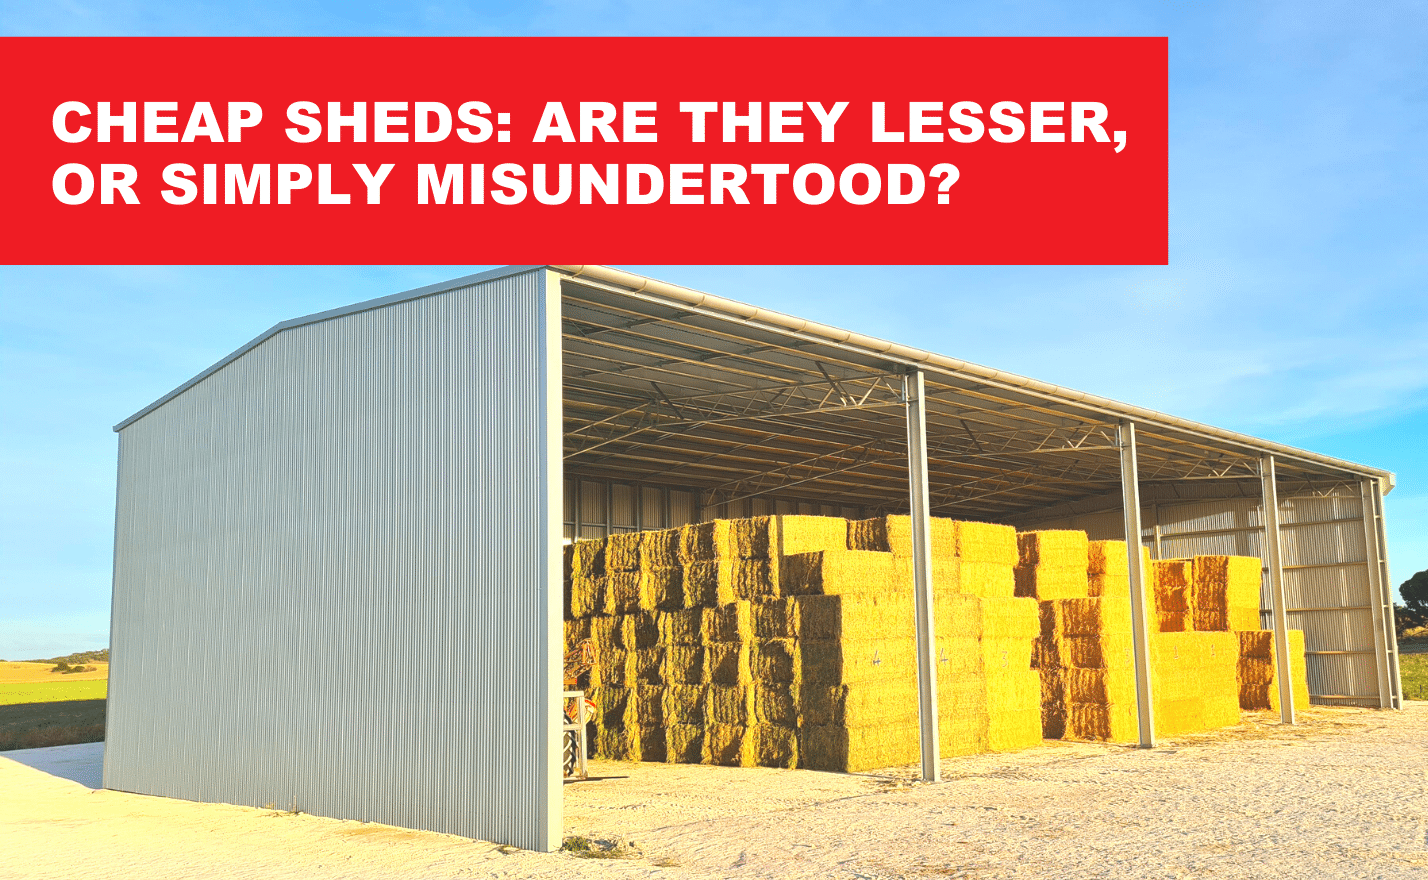 Cheaper_sheds:_Are_they_lesser_or-misunderstood?